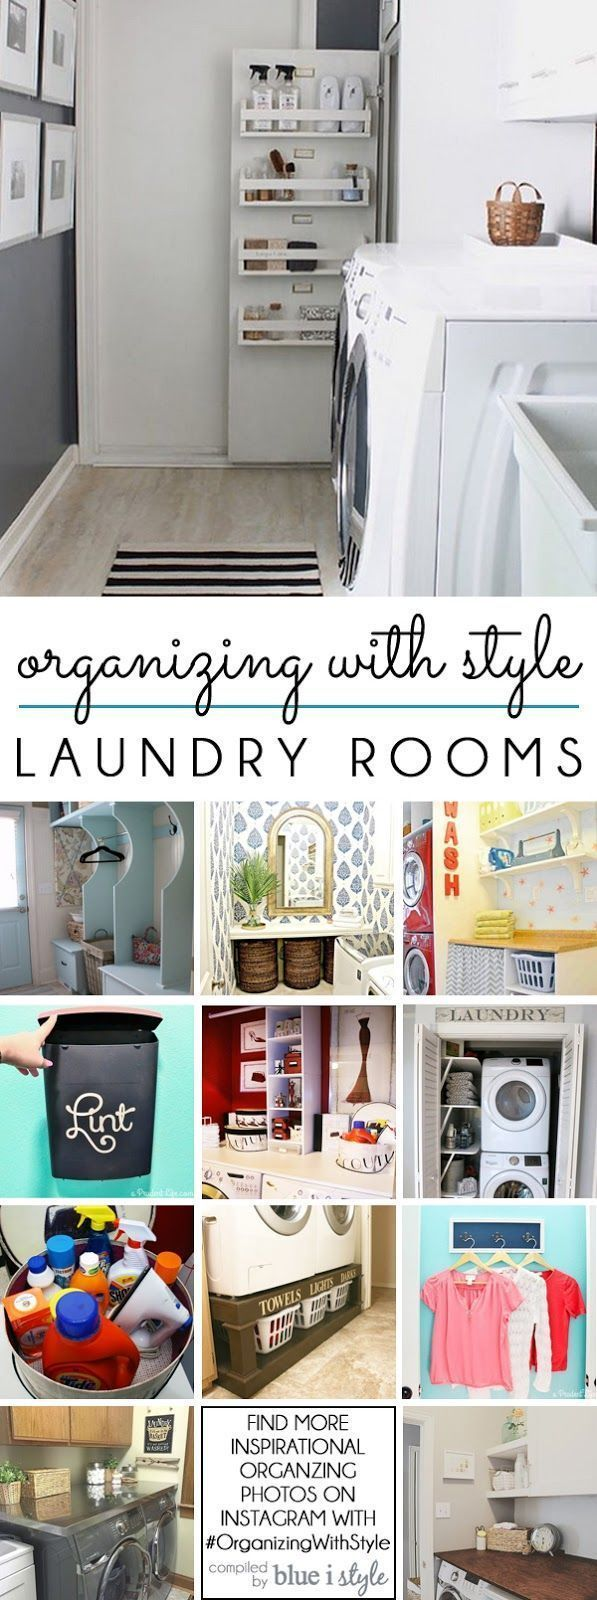 LAUNDRY ROOM ORGANIZATION! 12 great tips and tricks for creating a stylish and organized laundry room or laundry closet!